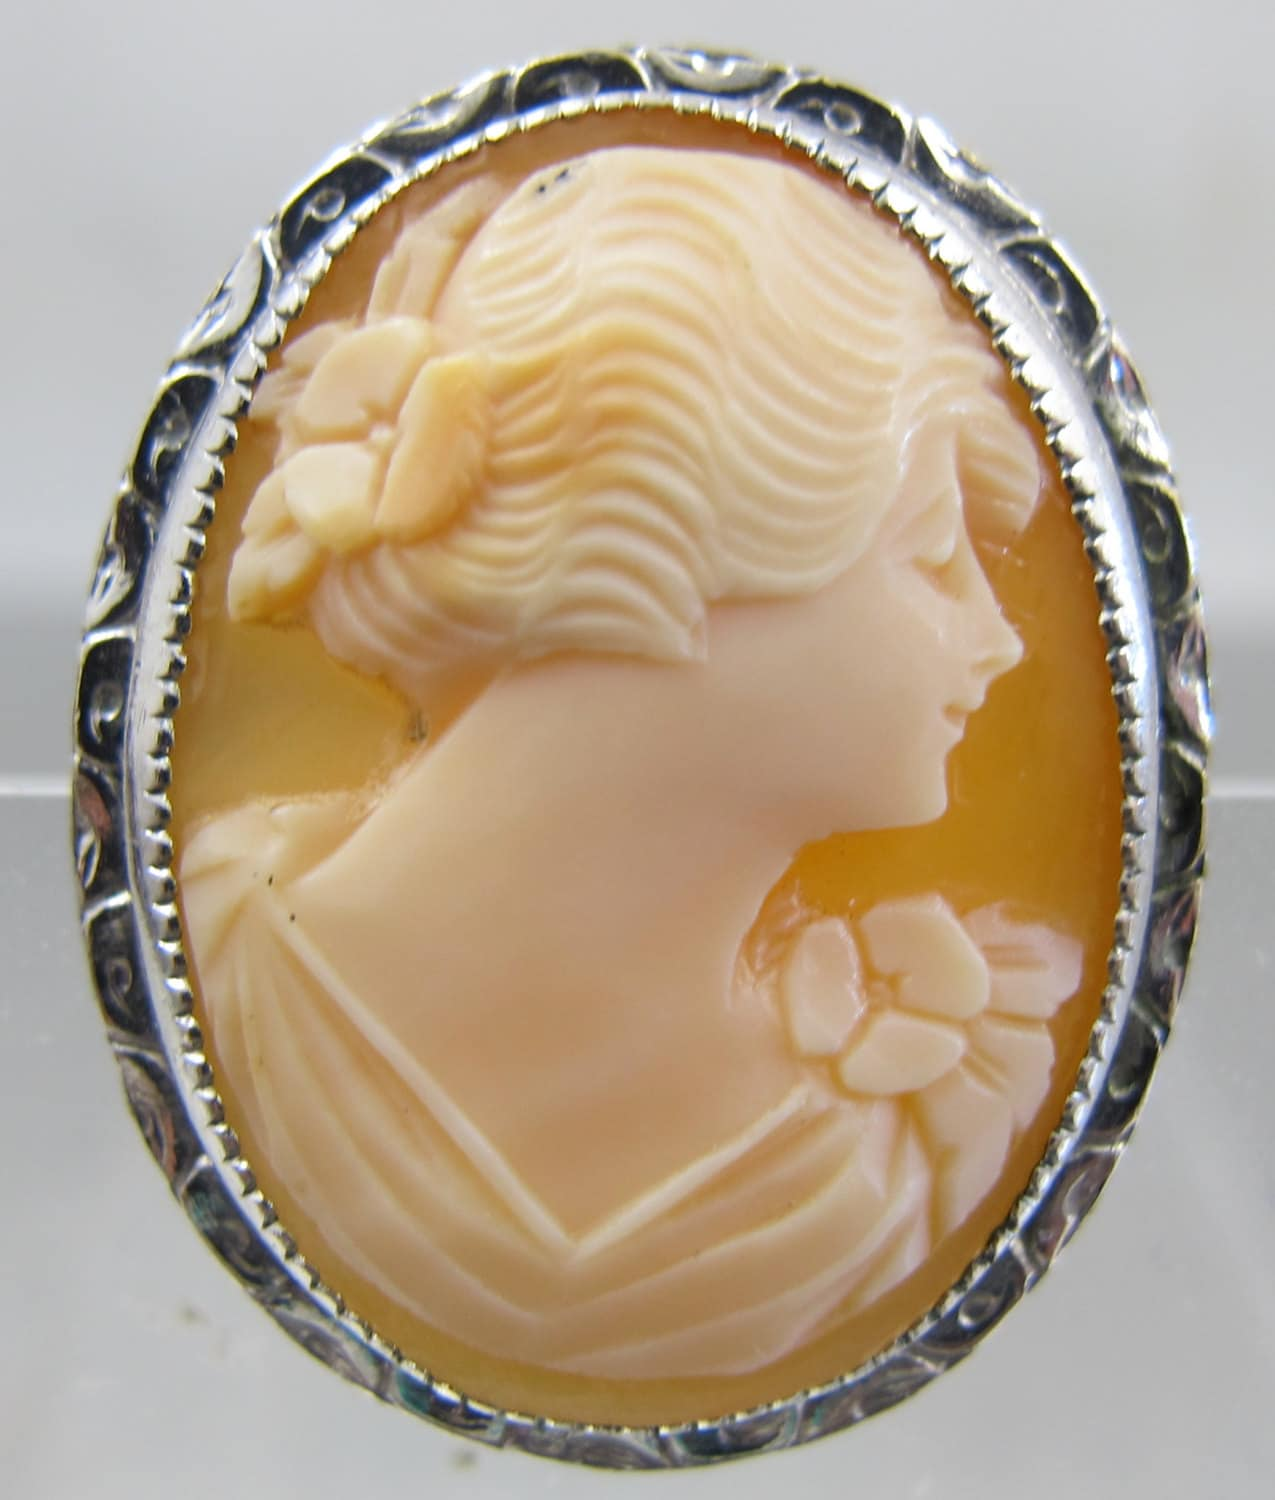 Vintage Cameo Brooch Pendant Carved Shell Cameo Silver Ornate